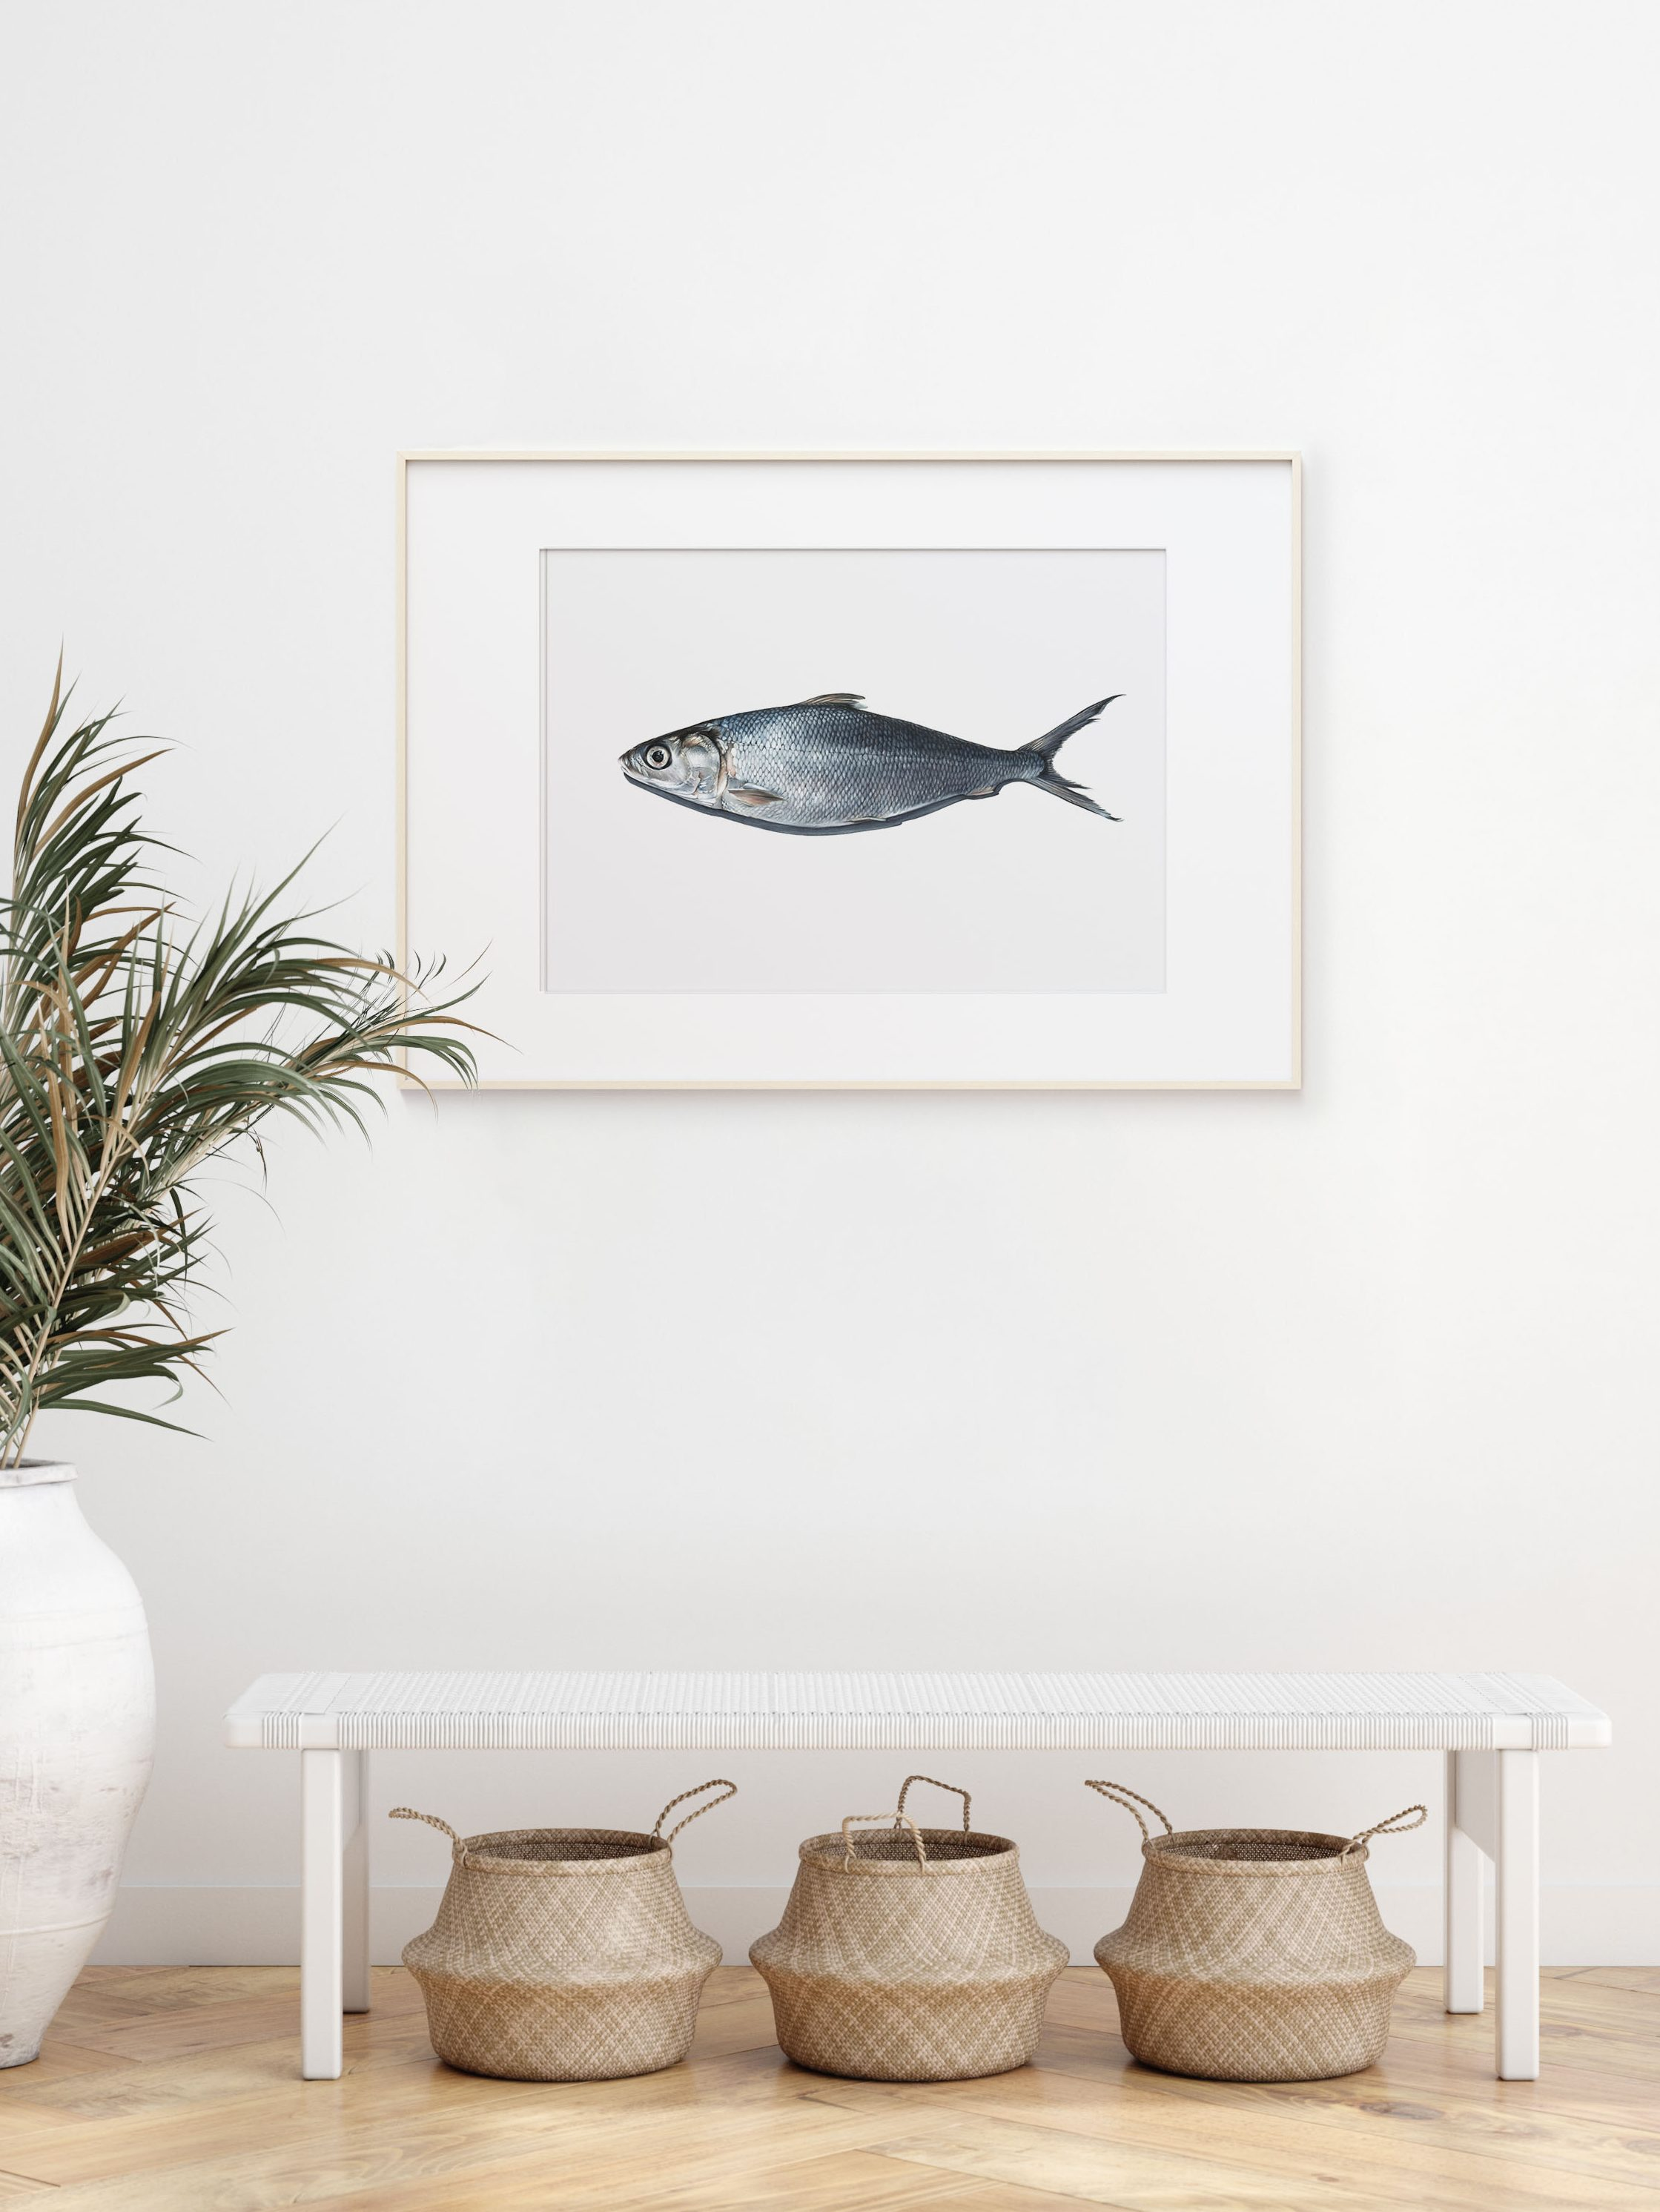 'Milkfish' artwork by Bethany Moffat hanging on a wall